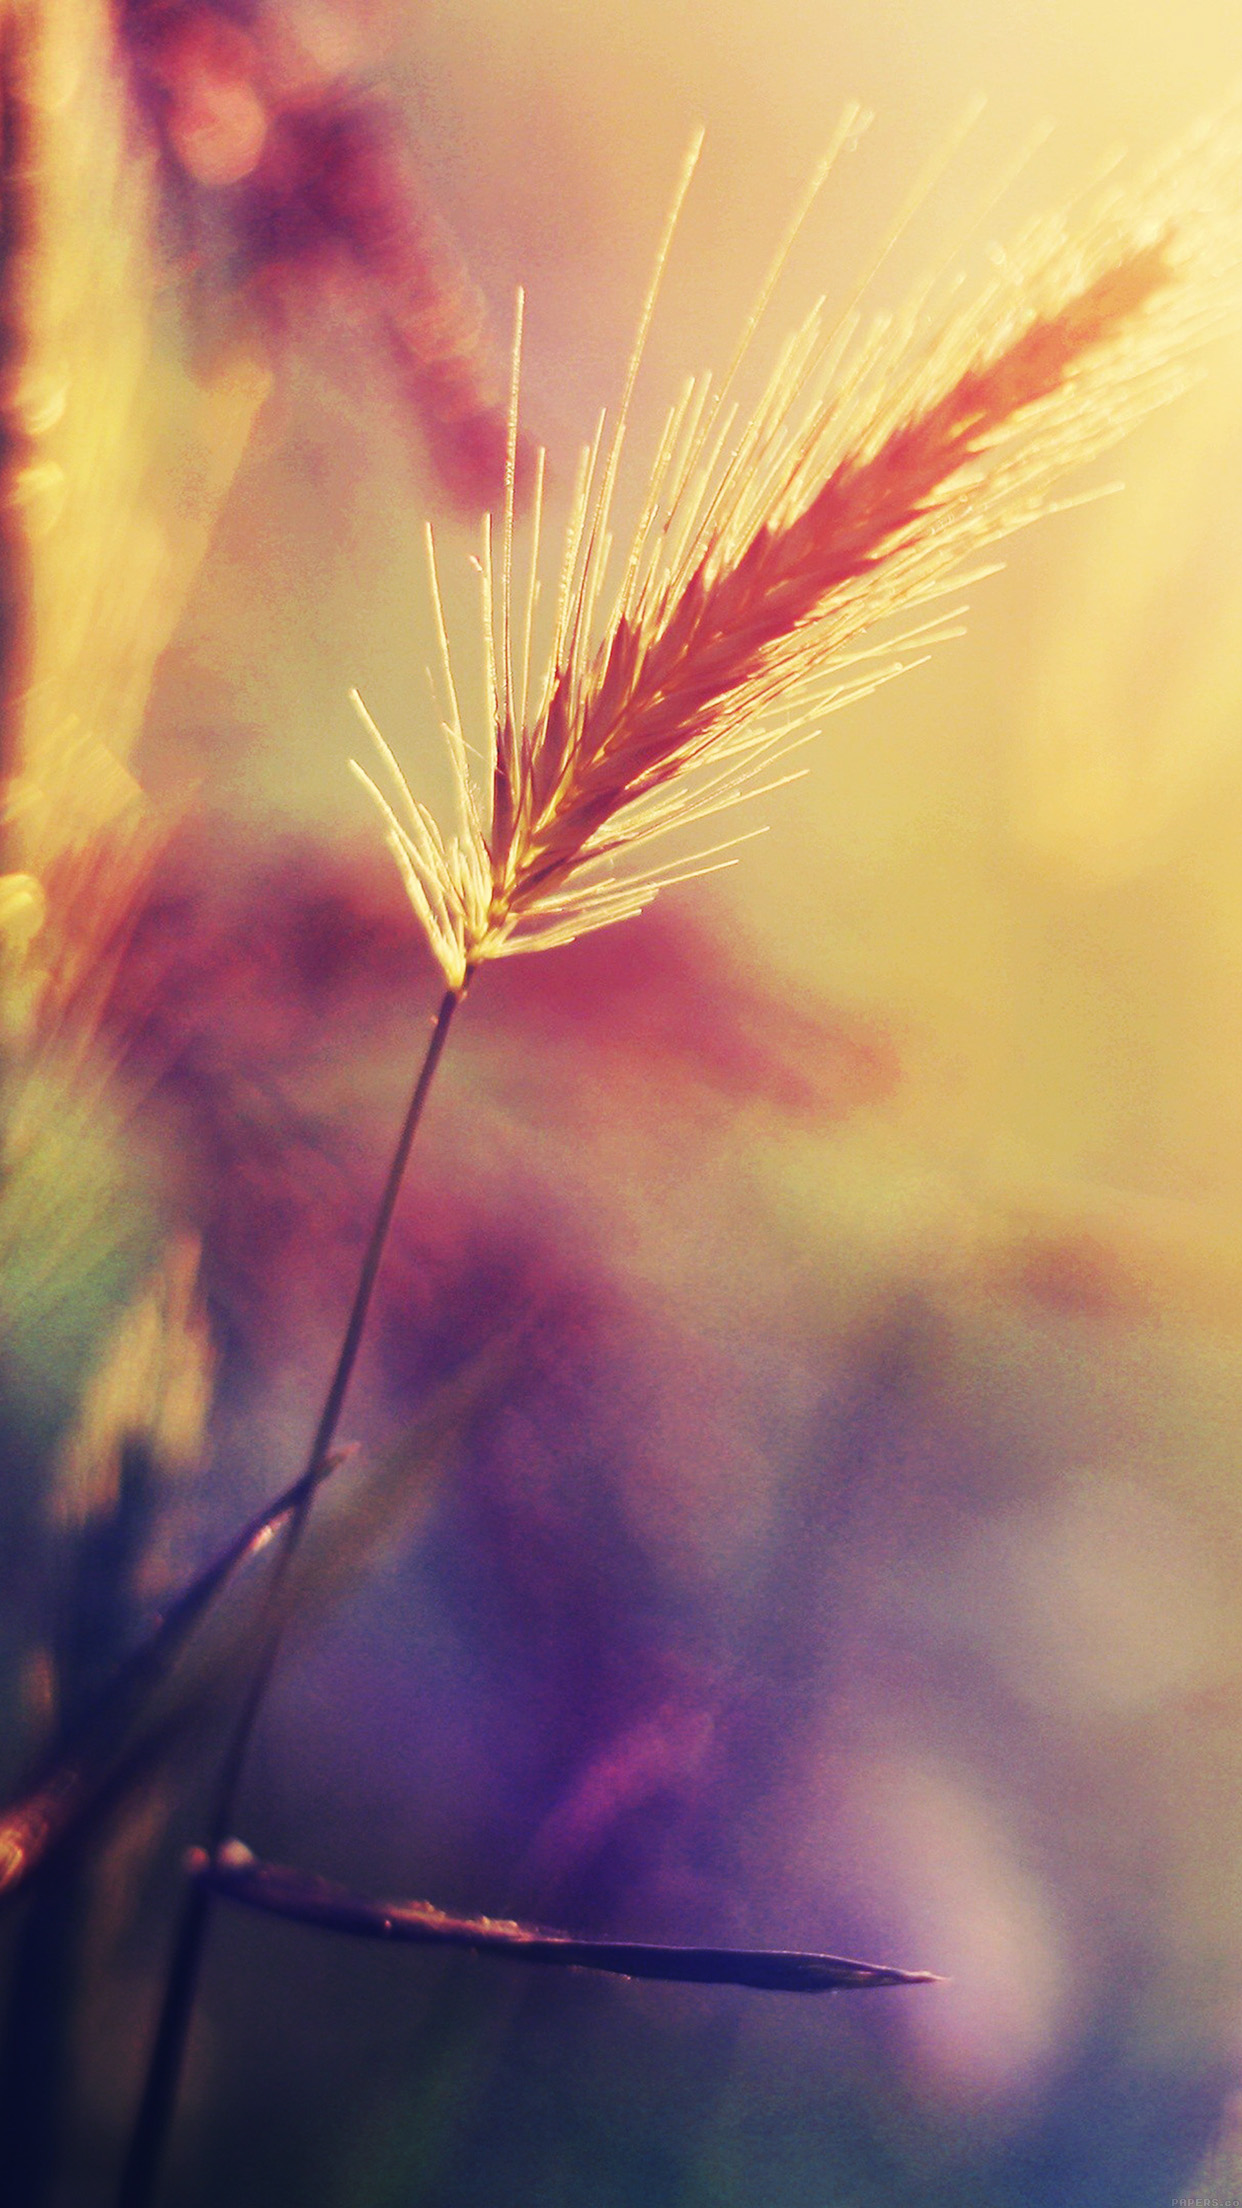 Gold Wallpaper Iphone 5 Papers Co Iphone Wallpaper Mm19 Sunset Reed Flower